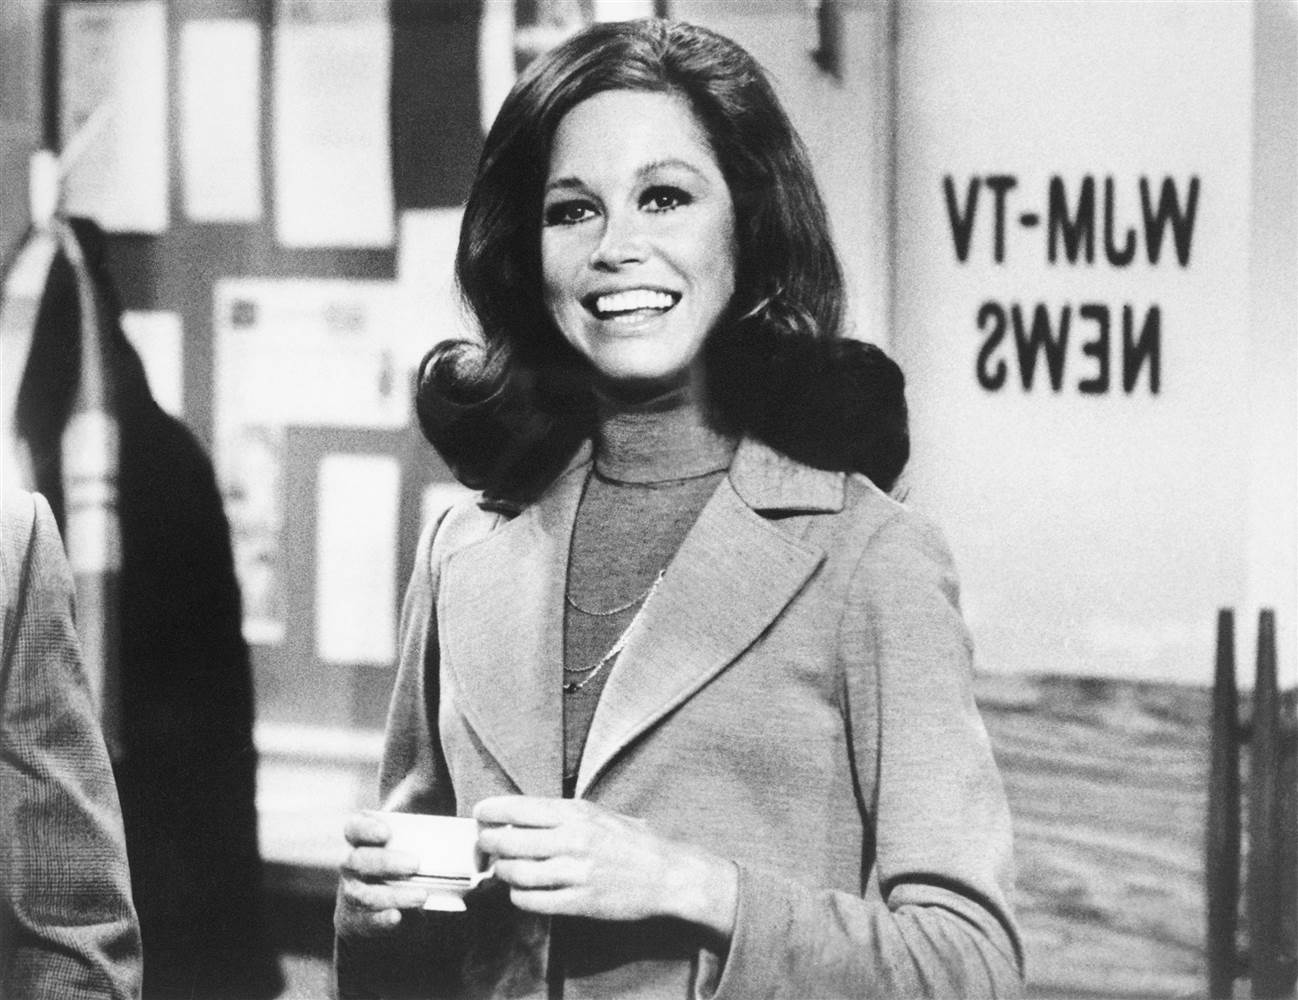 170125-mary-tyler-moore_642779a6f7208a58d1945695b88fd183_nbcnews-ux-2880-1000